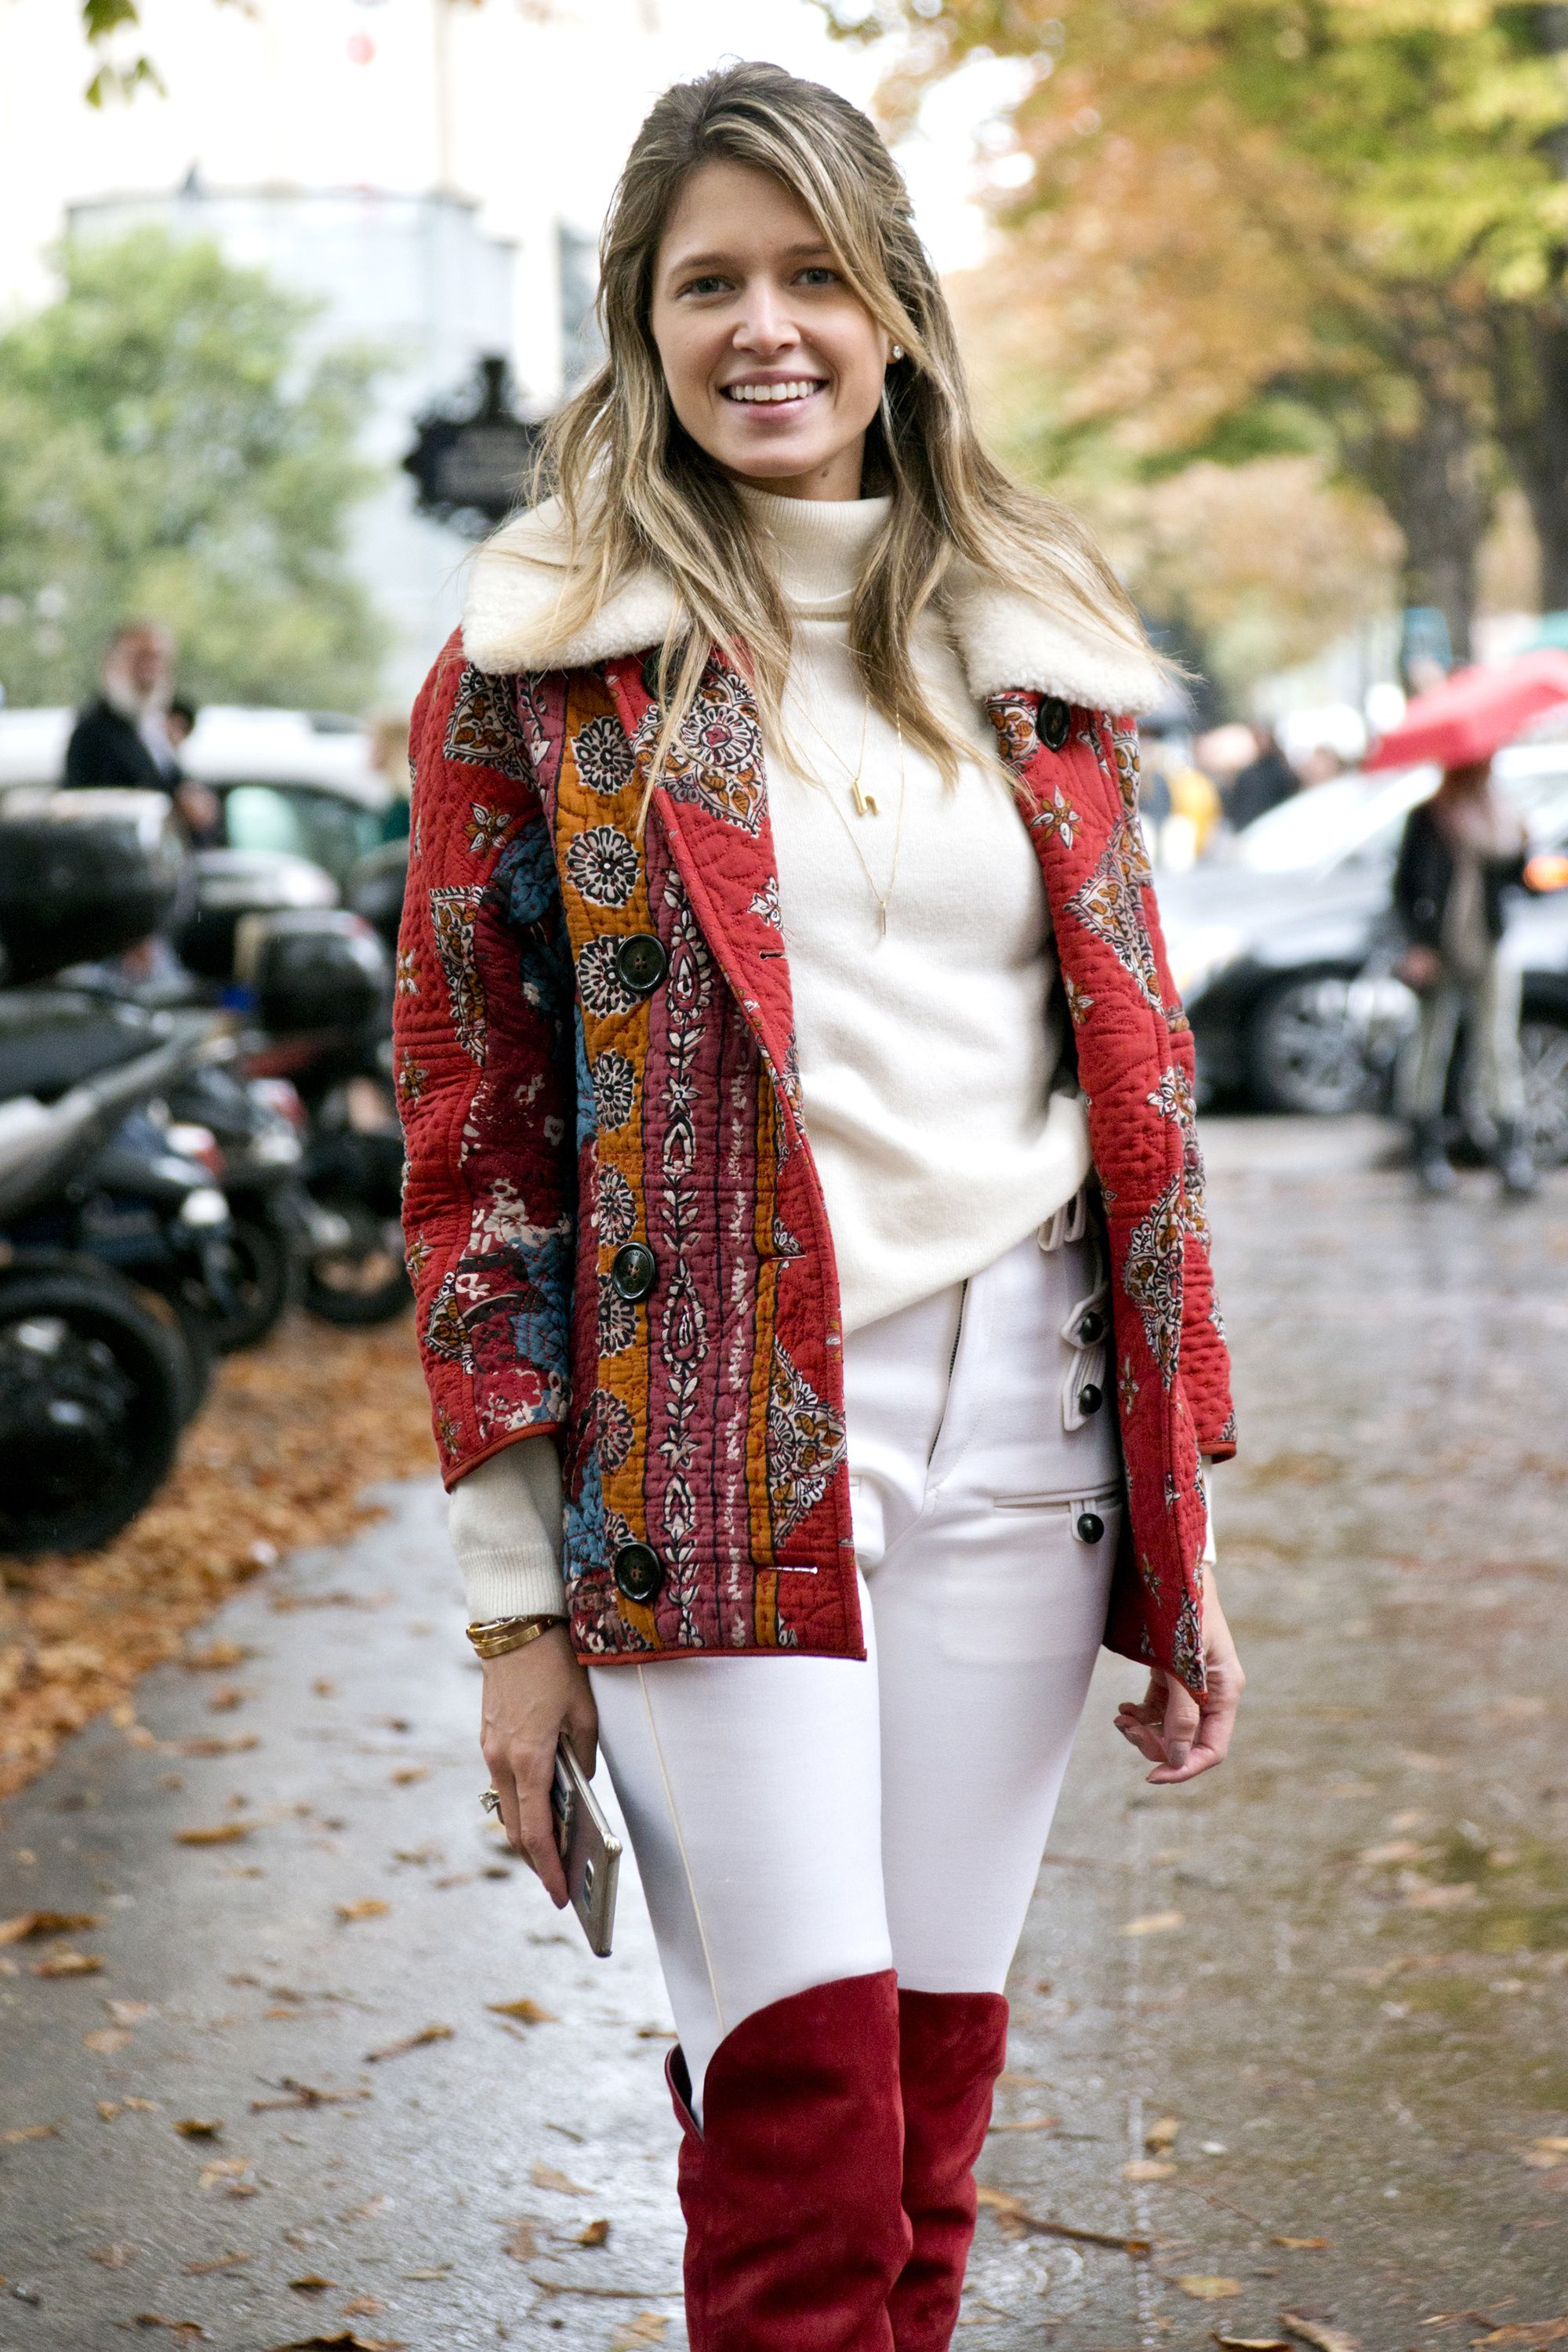 """<p>Take a cue from <a href=""""https://www.instagram.com/helenabordon/"""" target=""""_blank"""">Helena Bordon</a> and layer dainty gold necklaces with over a textured, cozy turtleneck.</p>"""